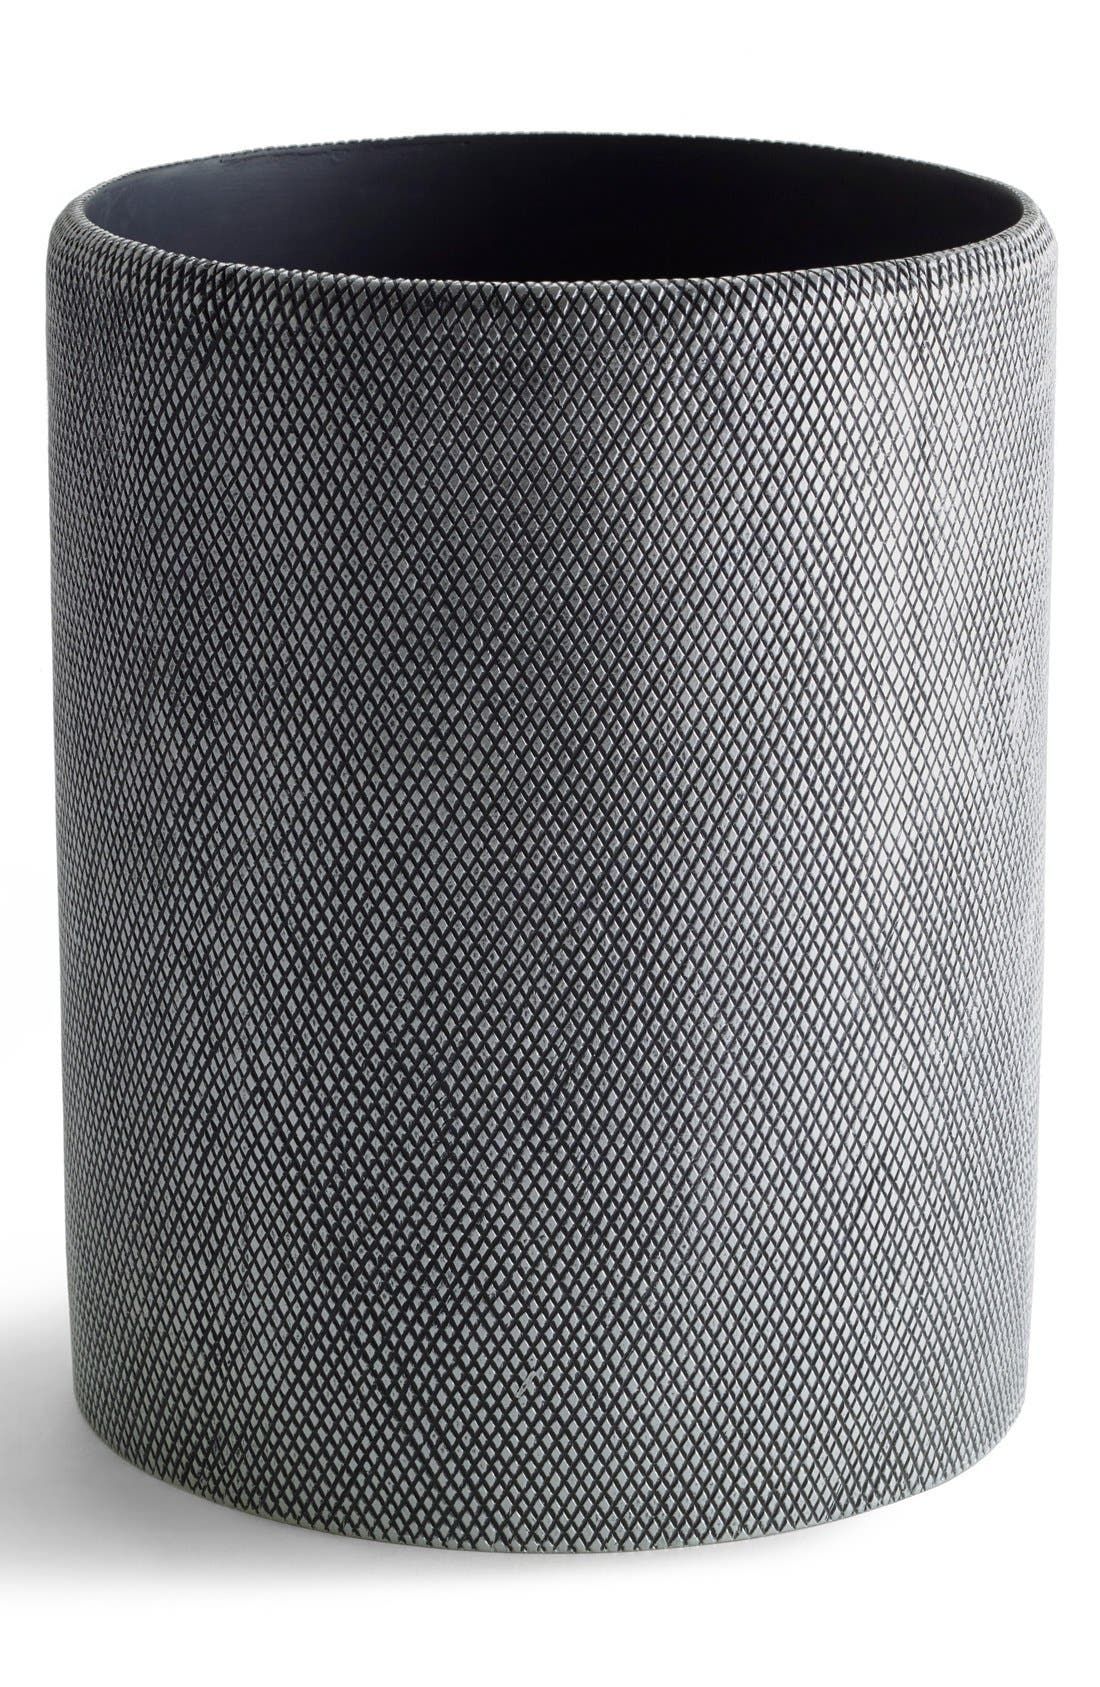 Etched Wastebasket,                         Main,                         color, GREY